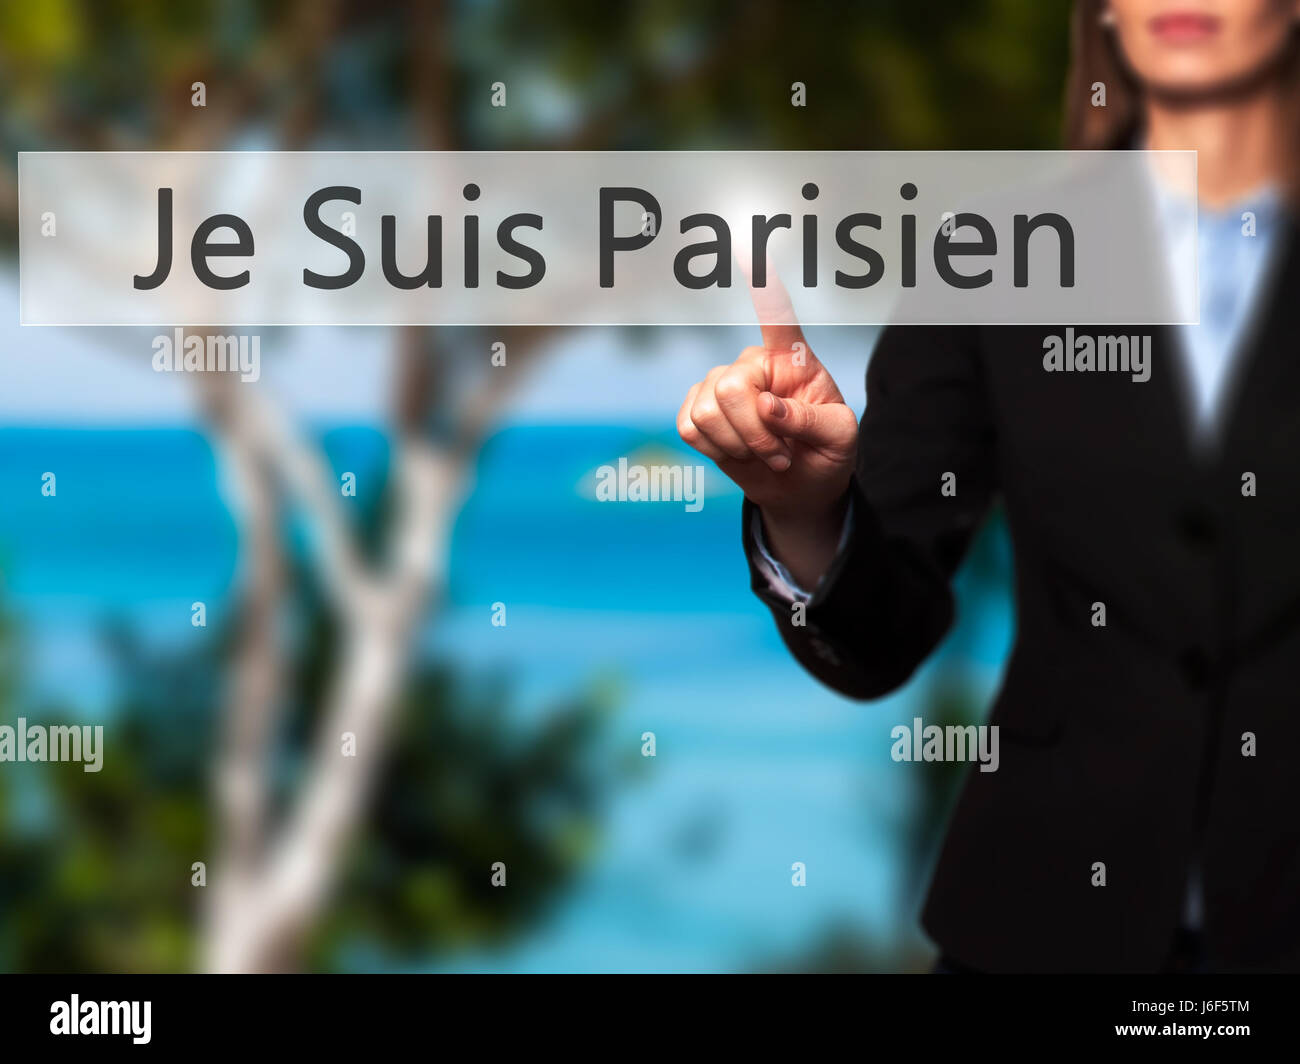 Je Suis Parisien ( I am Parisien)  - Businesswoman hand pressing button on touch screen interface. Business, technology, Stock Photo